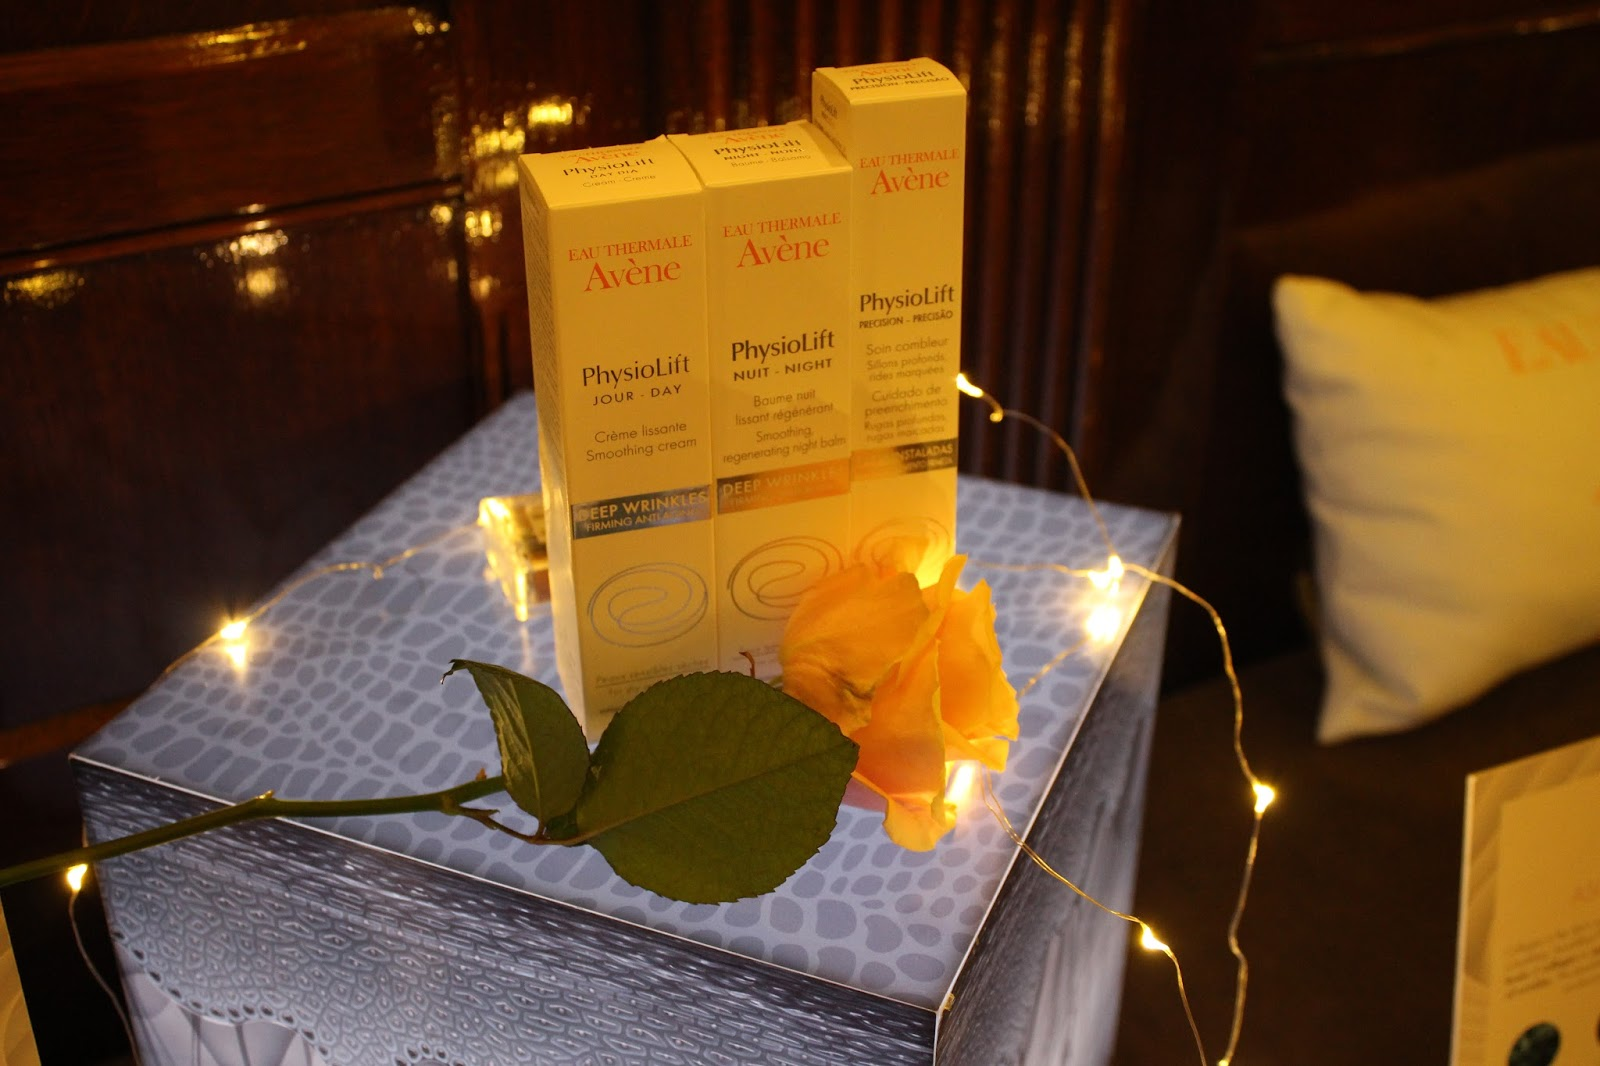 Avene 30 Plus Event - PhysioLift Range